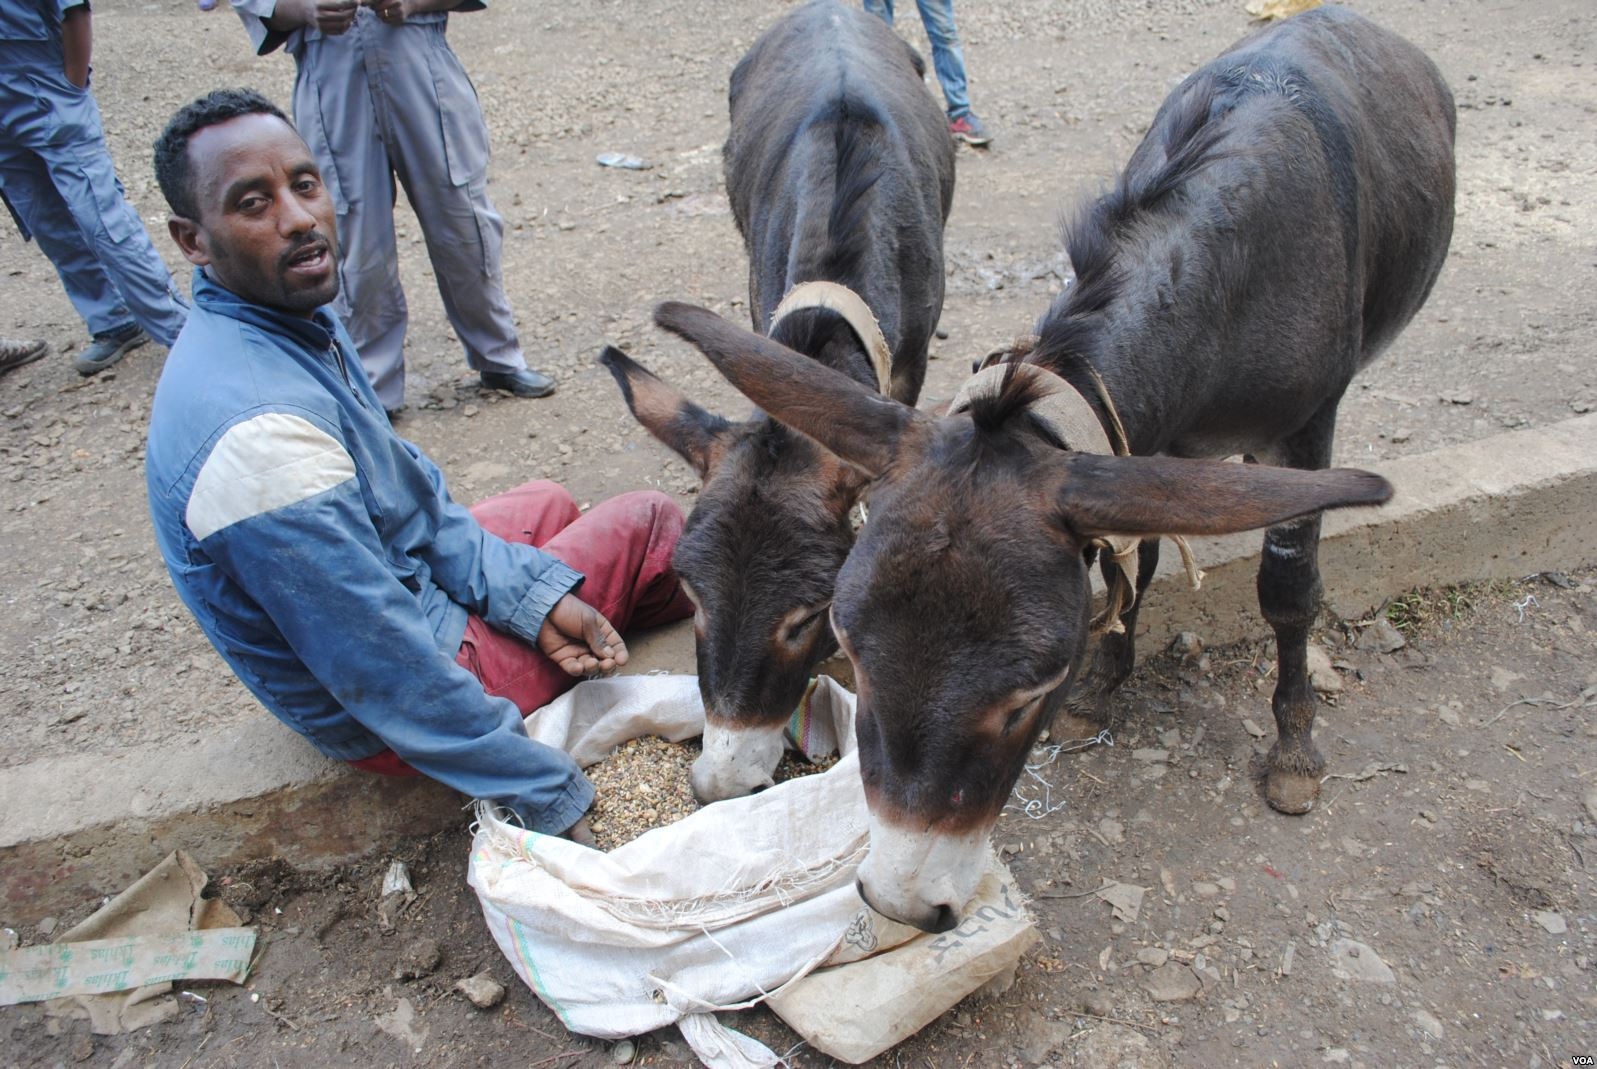 A donkey owner gives his animals healthier food in Ethiopia, where an estimated seven million donkeys are used for transporting water, wood, building materials and people.